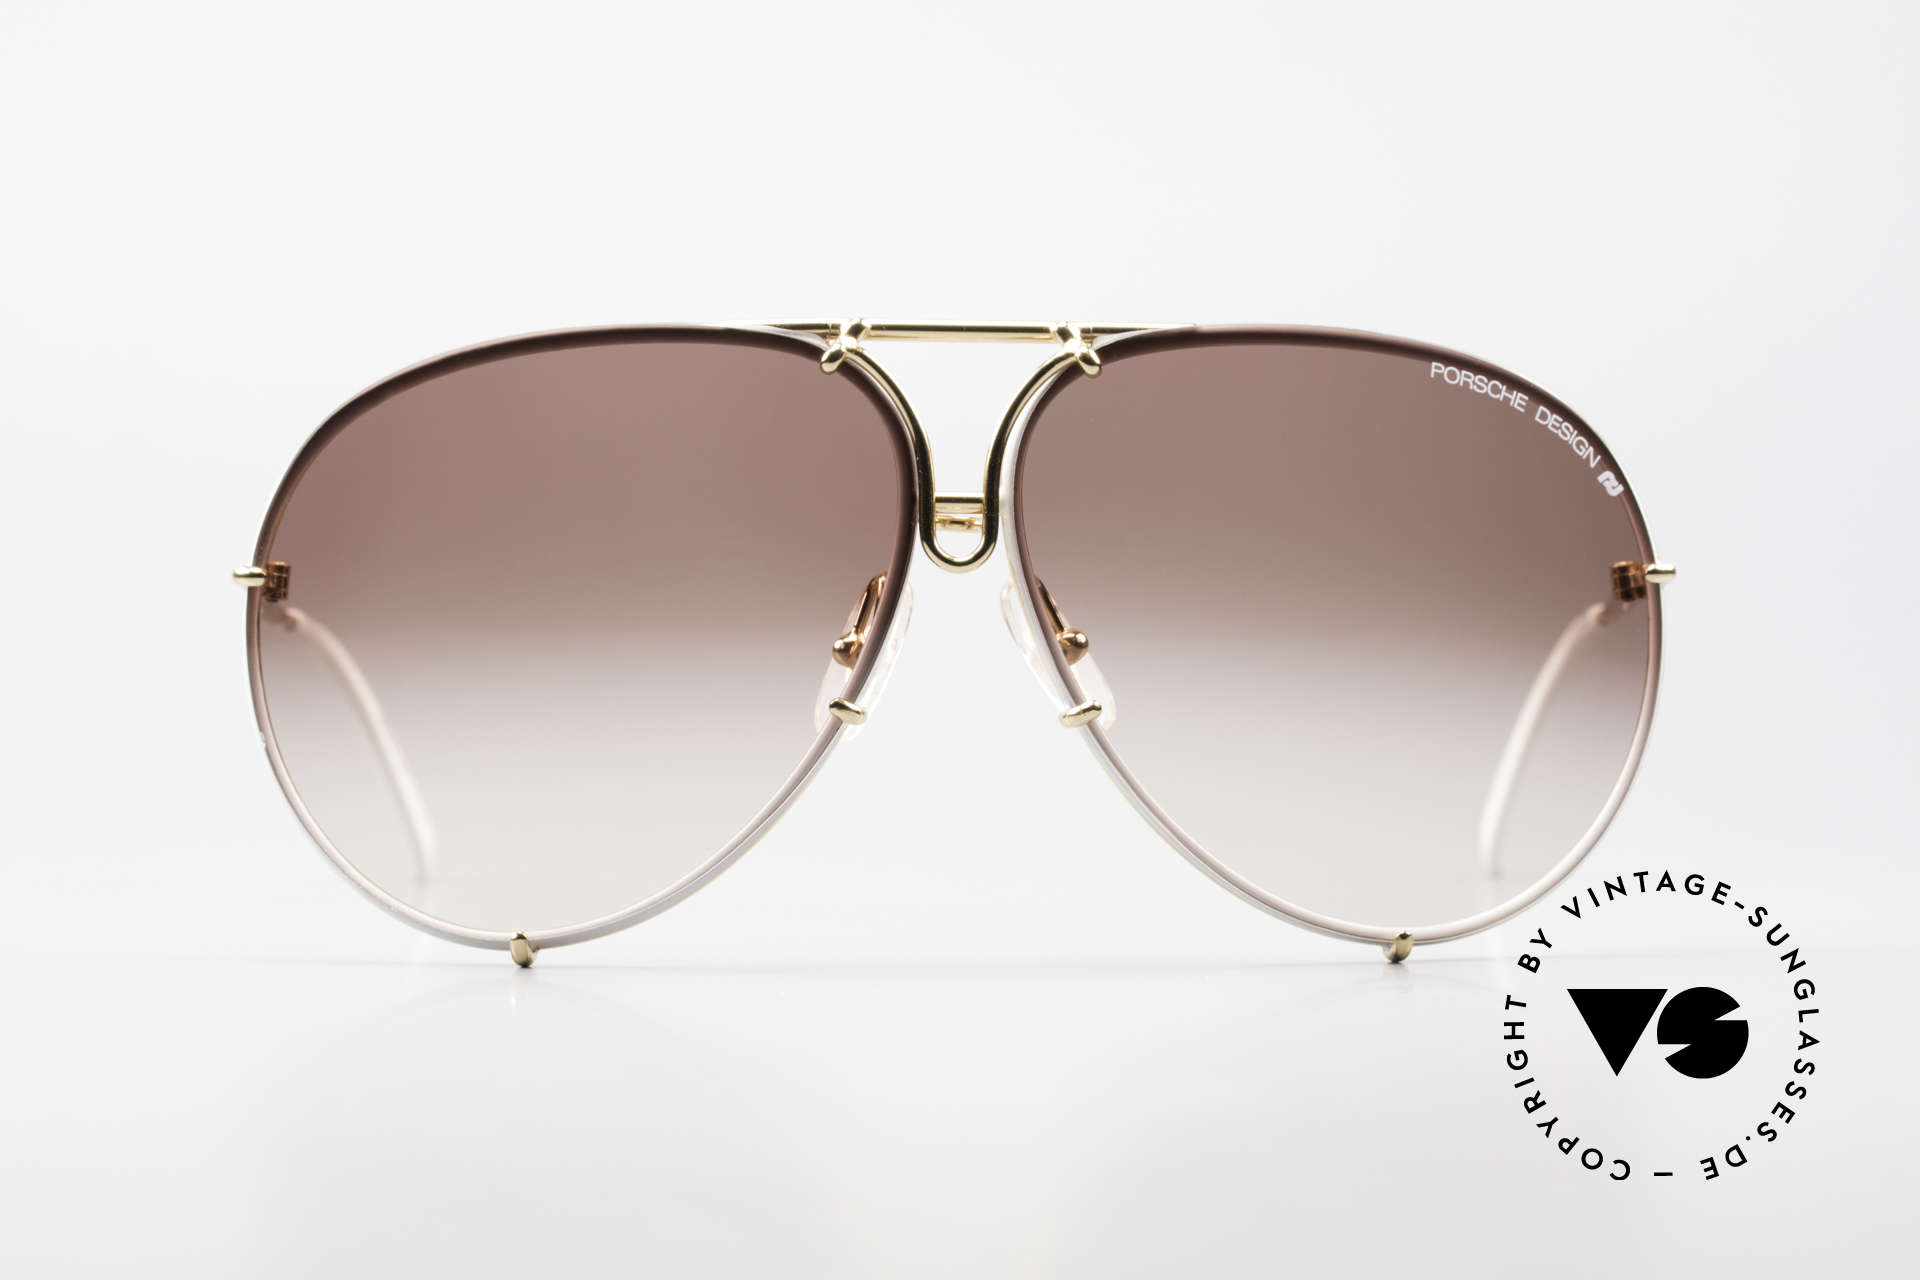 Porsche 5623 Special Edition Vintage Shades, the legendary classic with the interchangeable lenses, Made for Men and Women